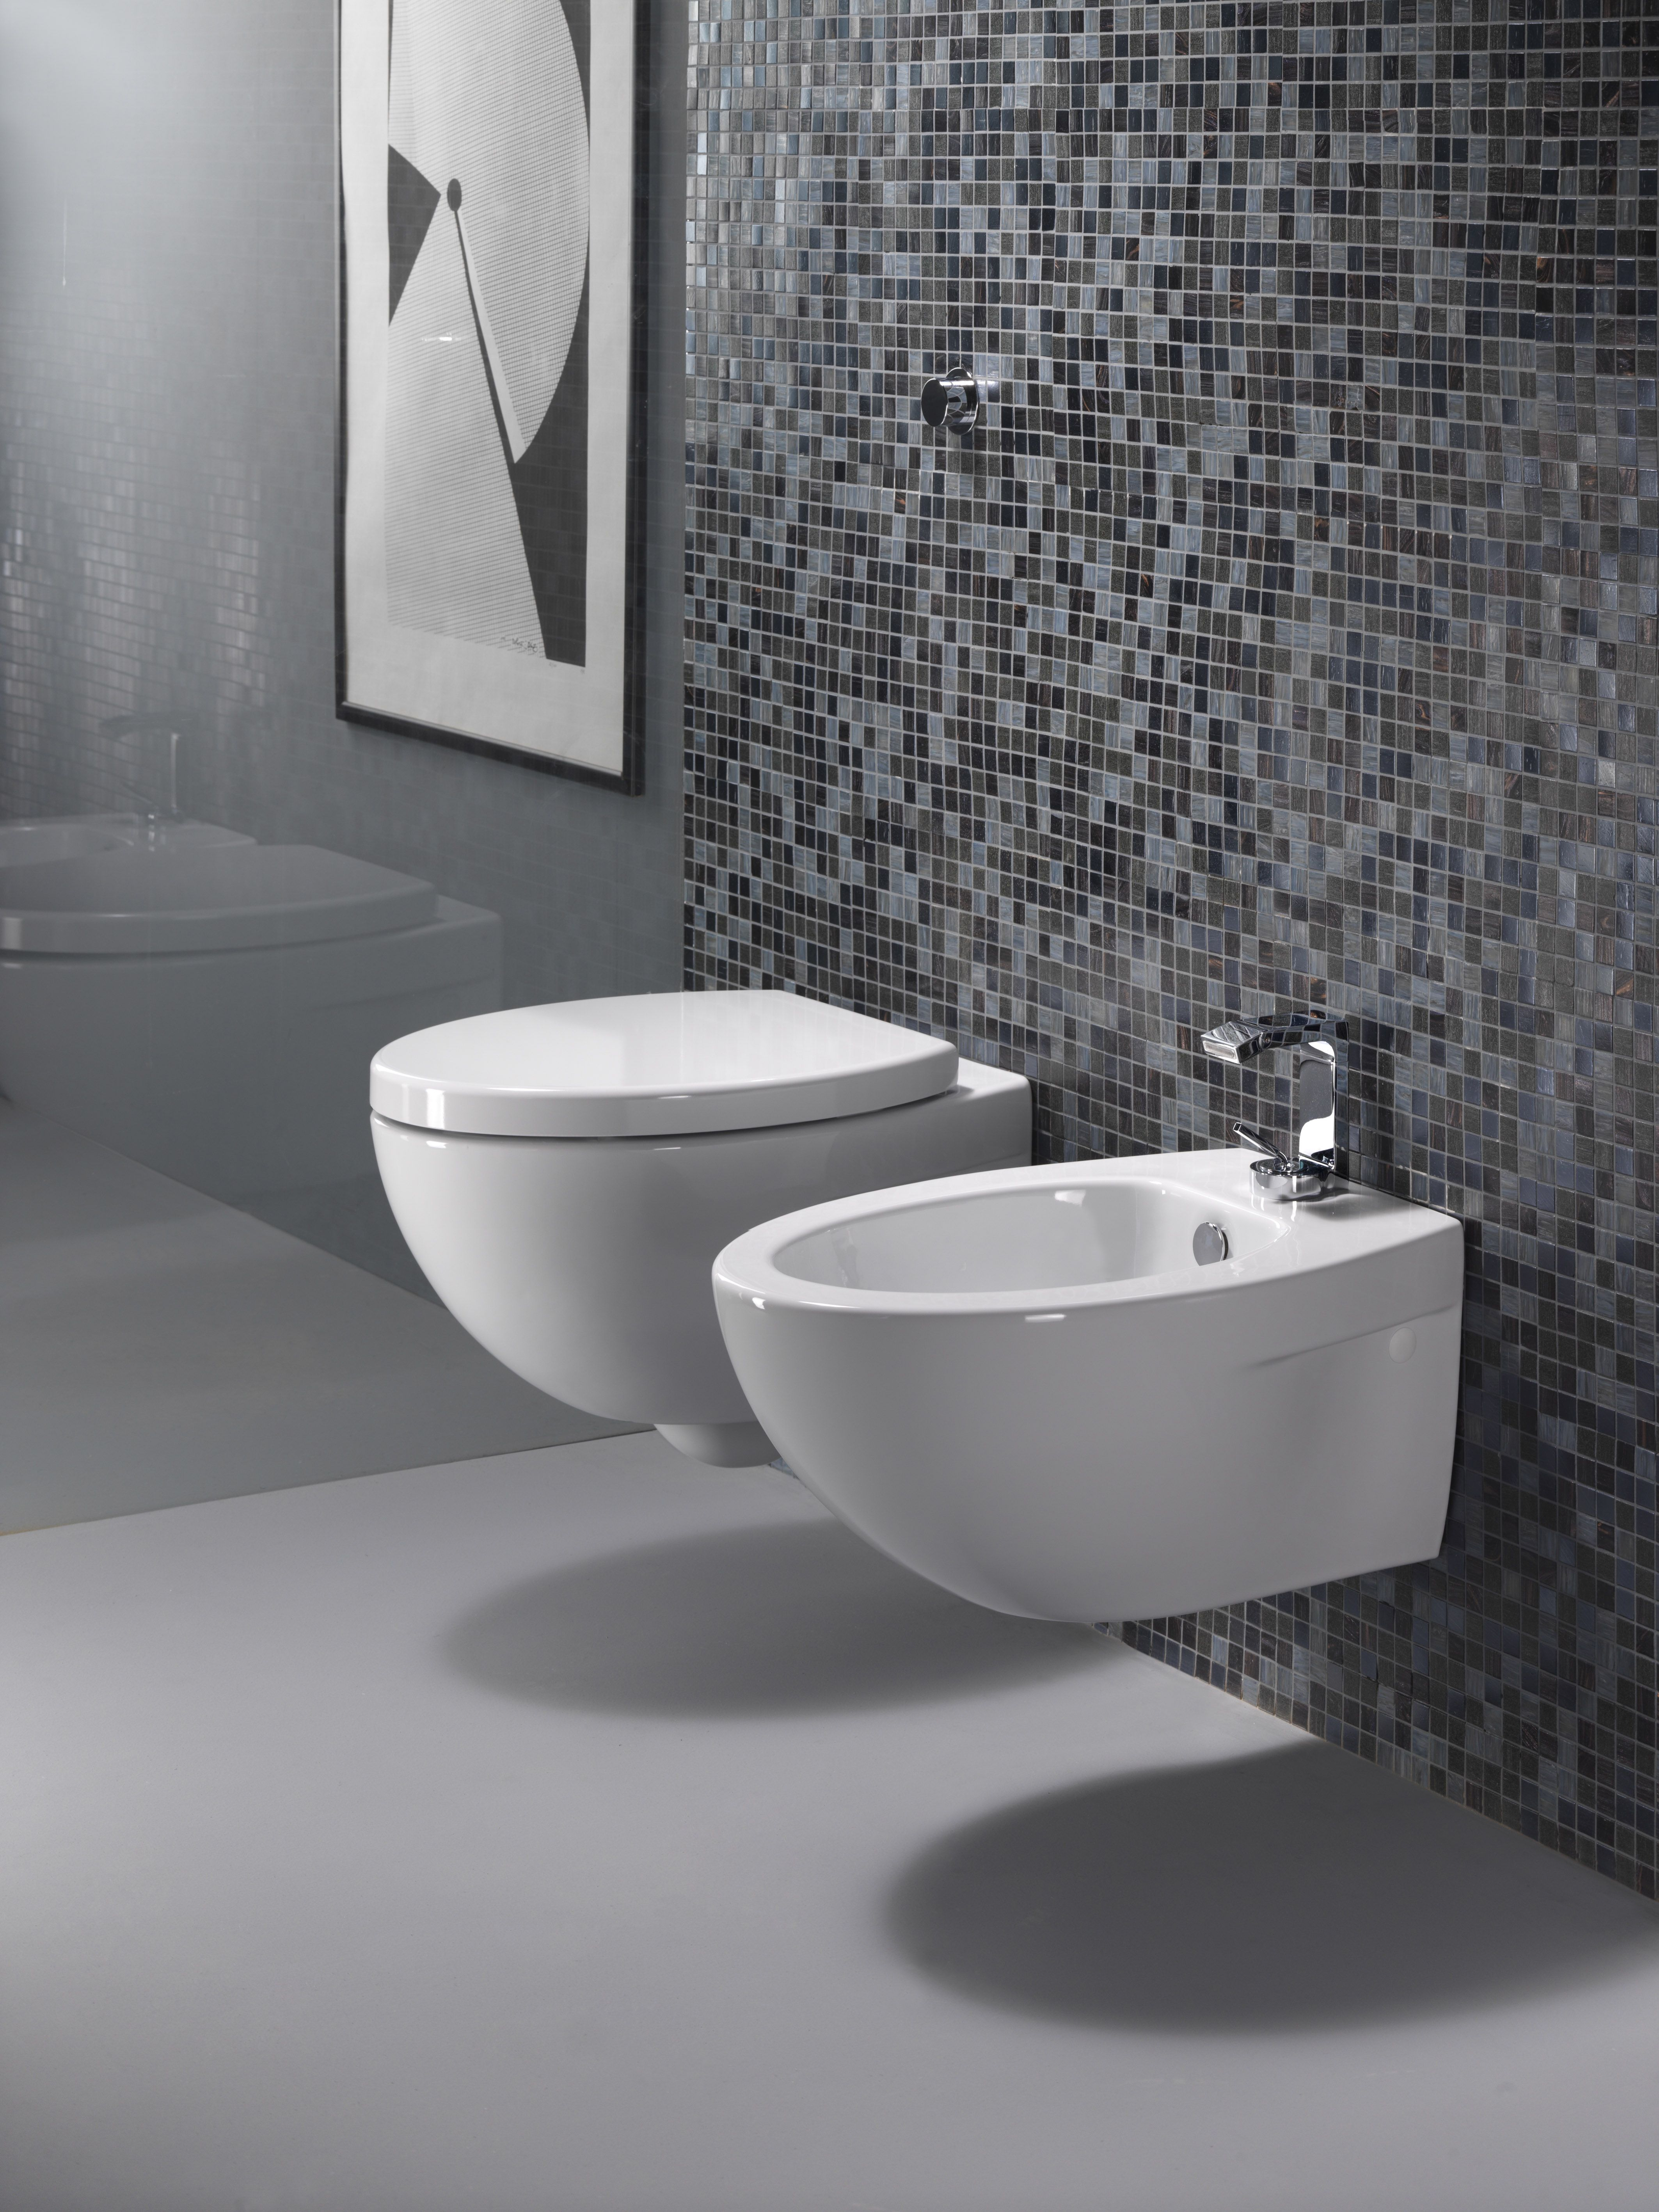 GSI ceramic | Soft and cosy lines with perfect volumetric and ... - Modo wall-hung wc and bidet